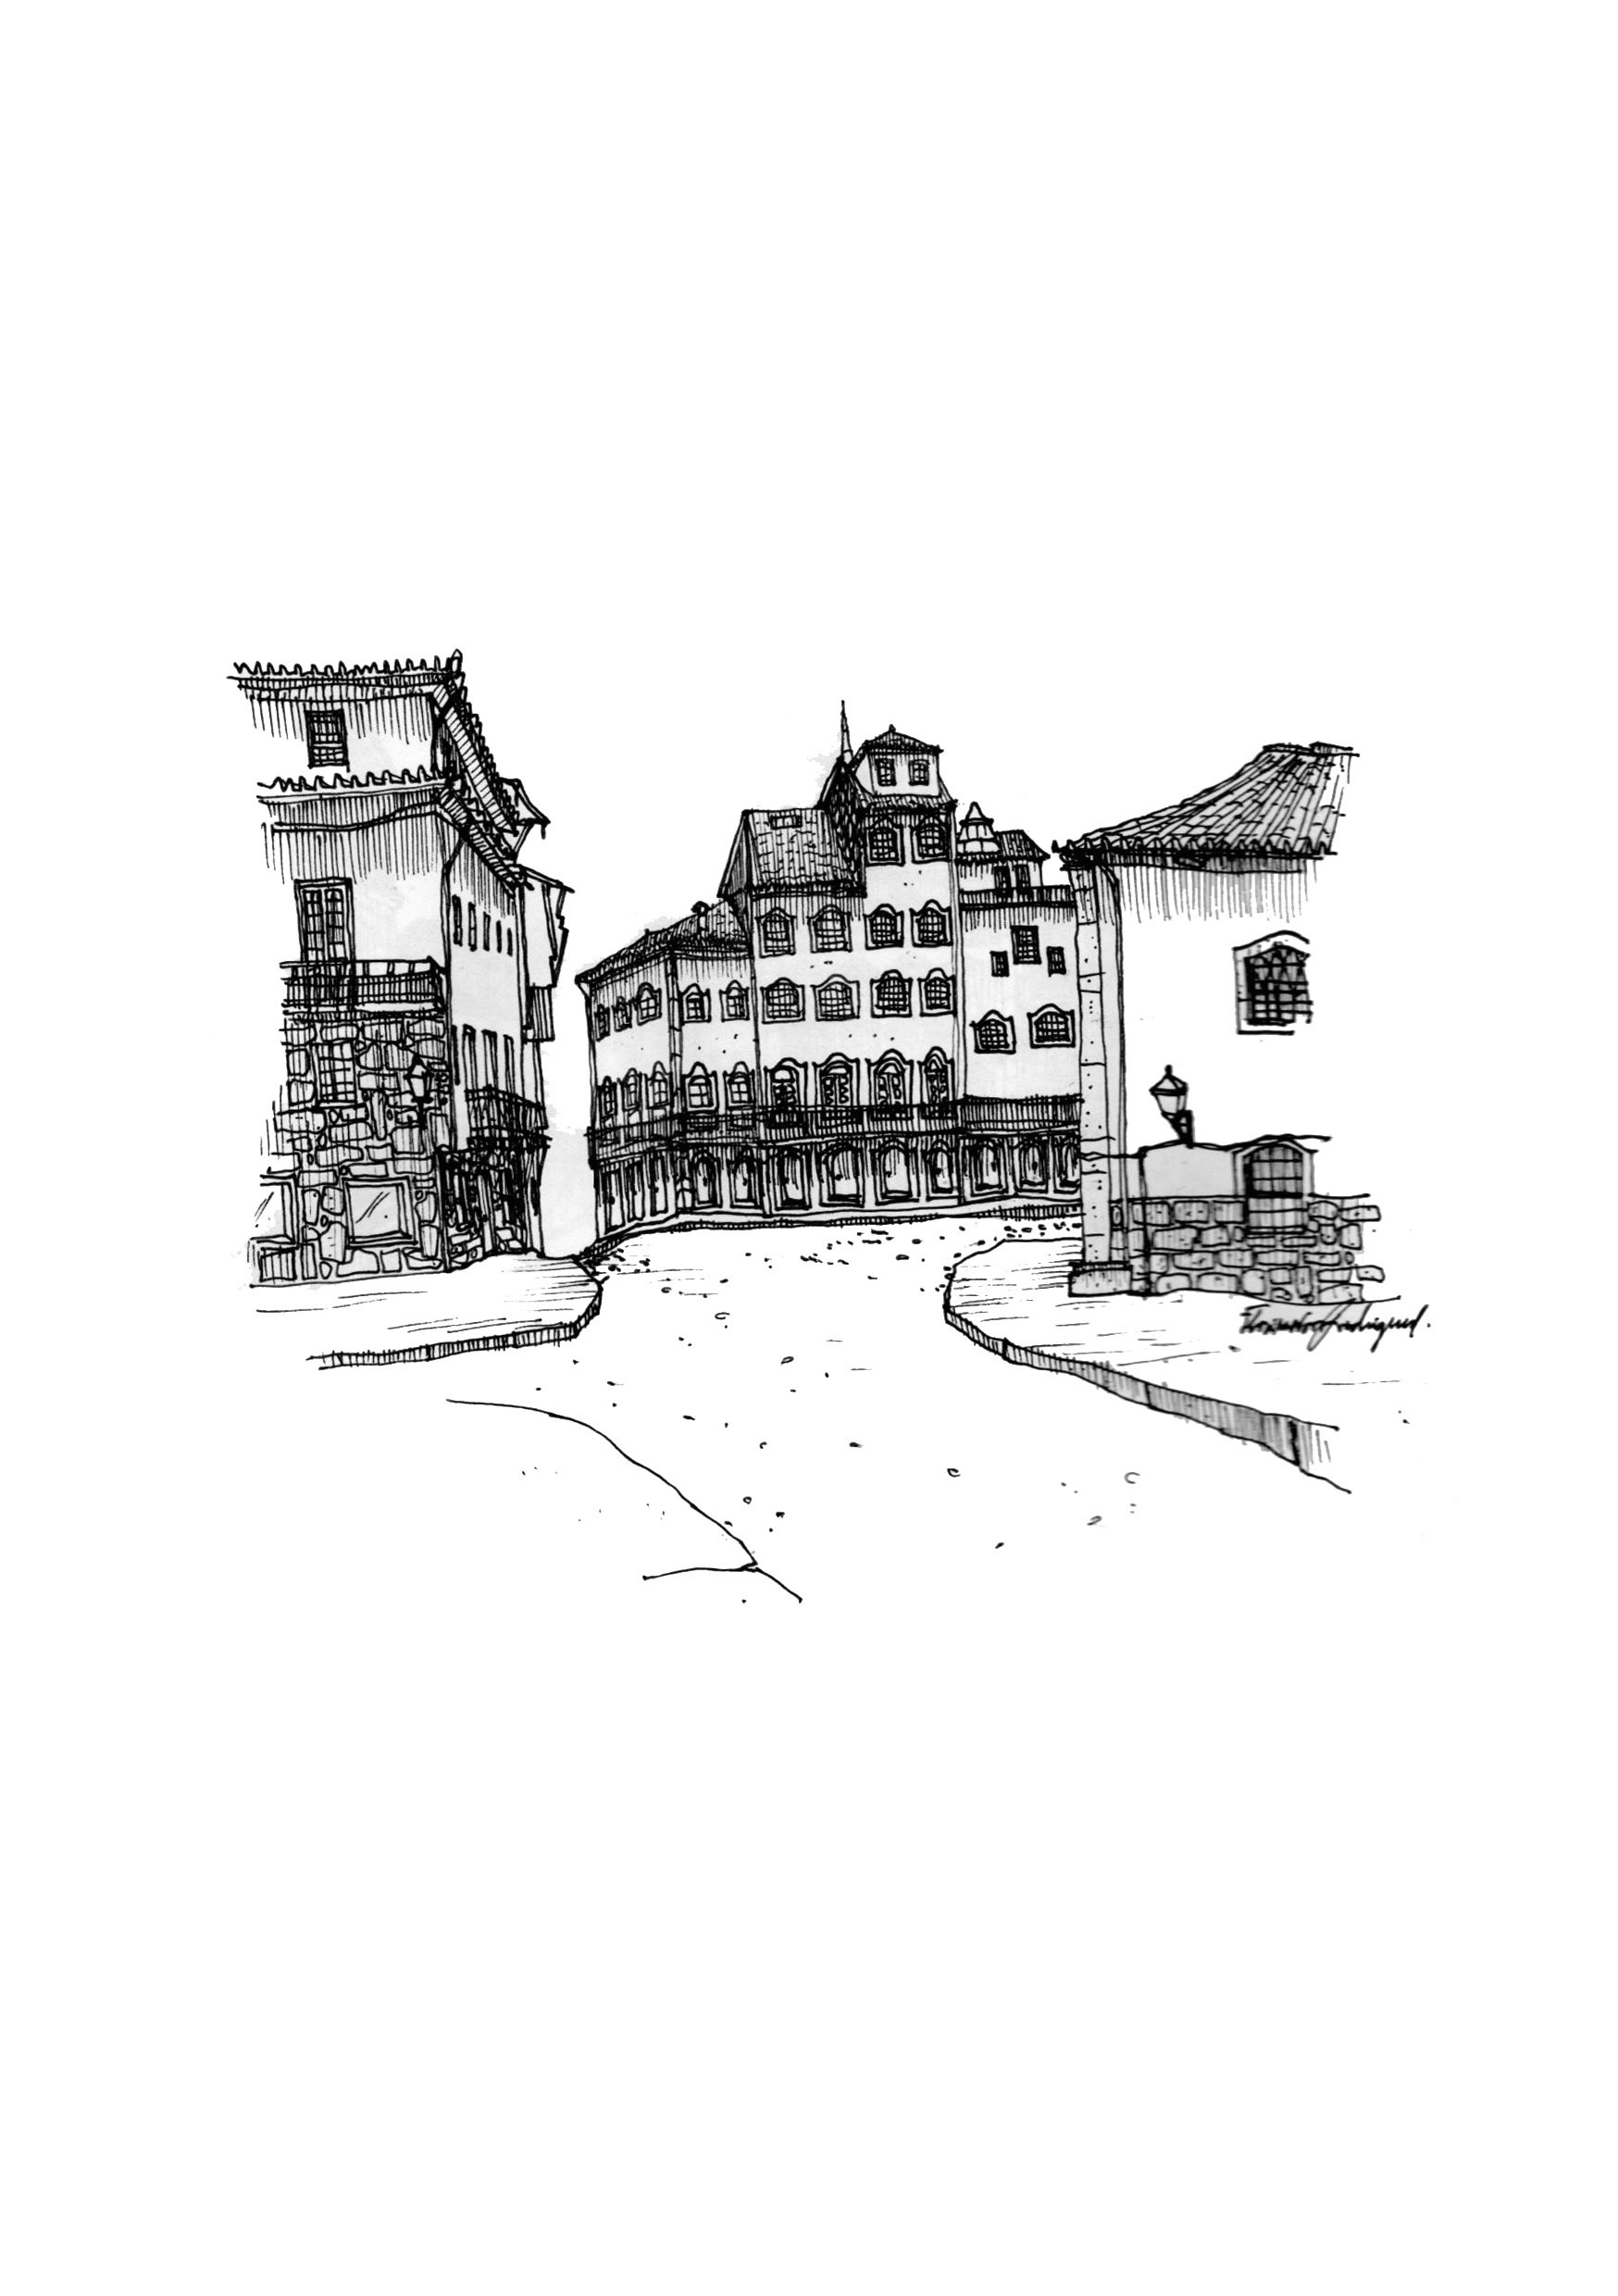 Esquisso 4, original Places Pen Drawing and Illustration by Florisa Novo Rodrigues